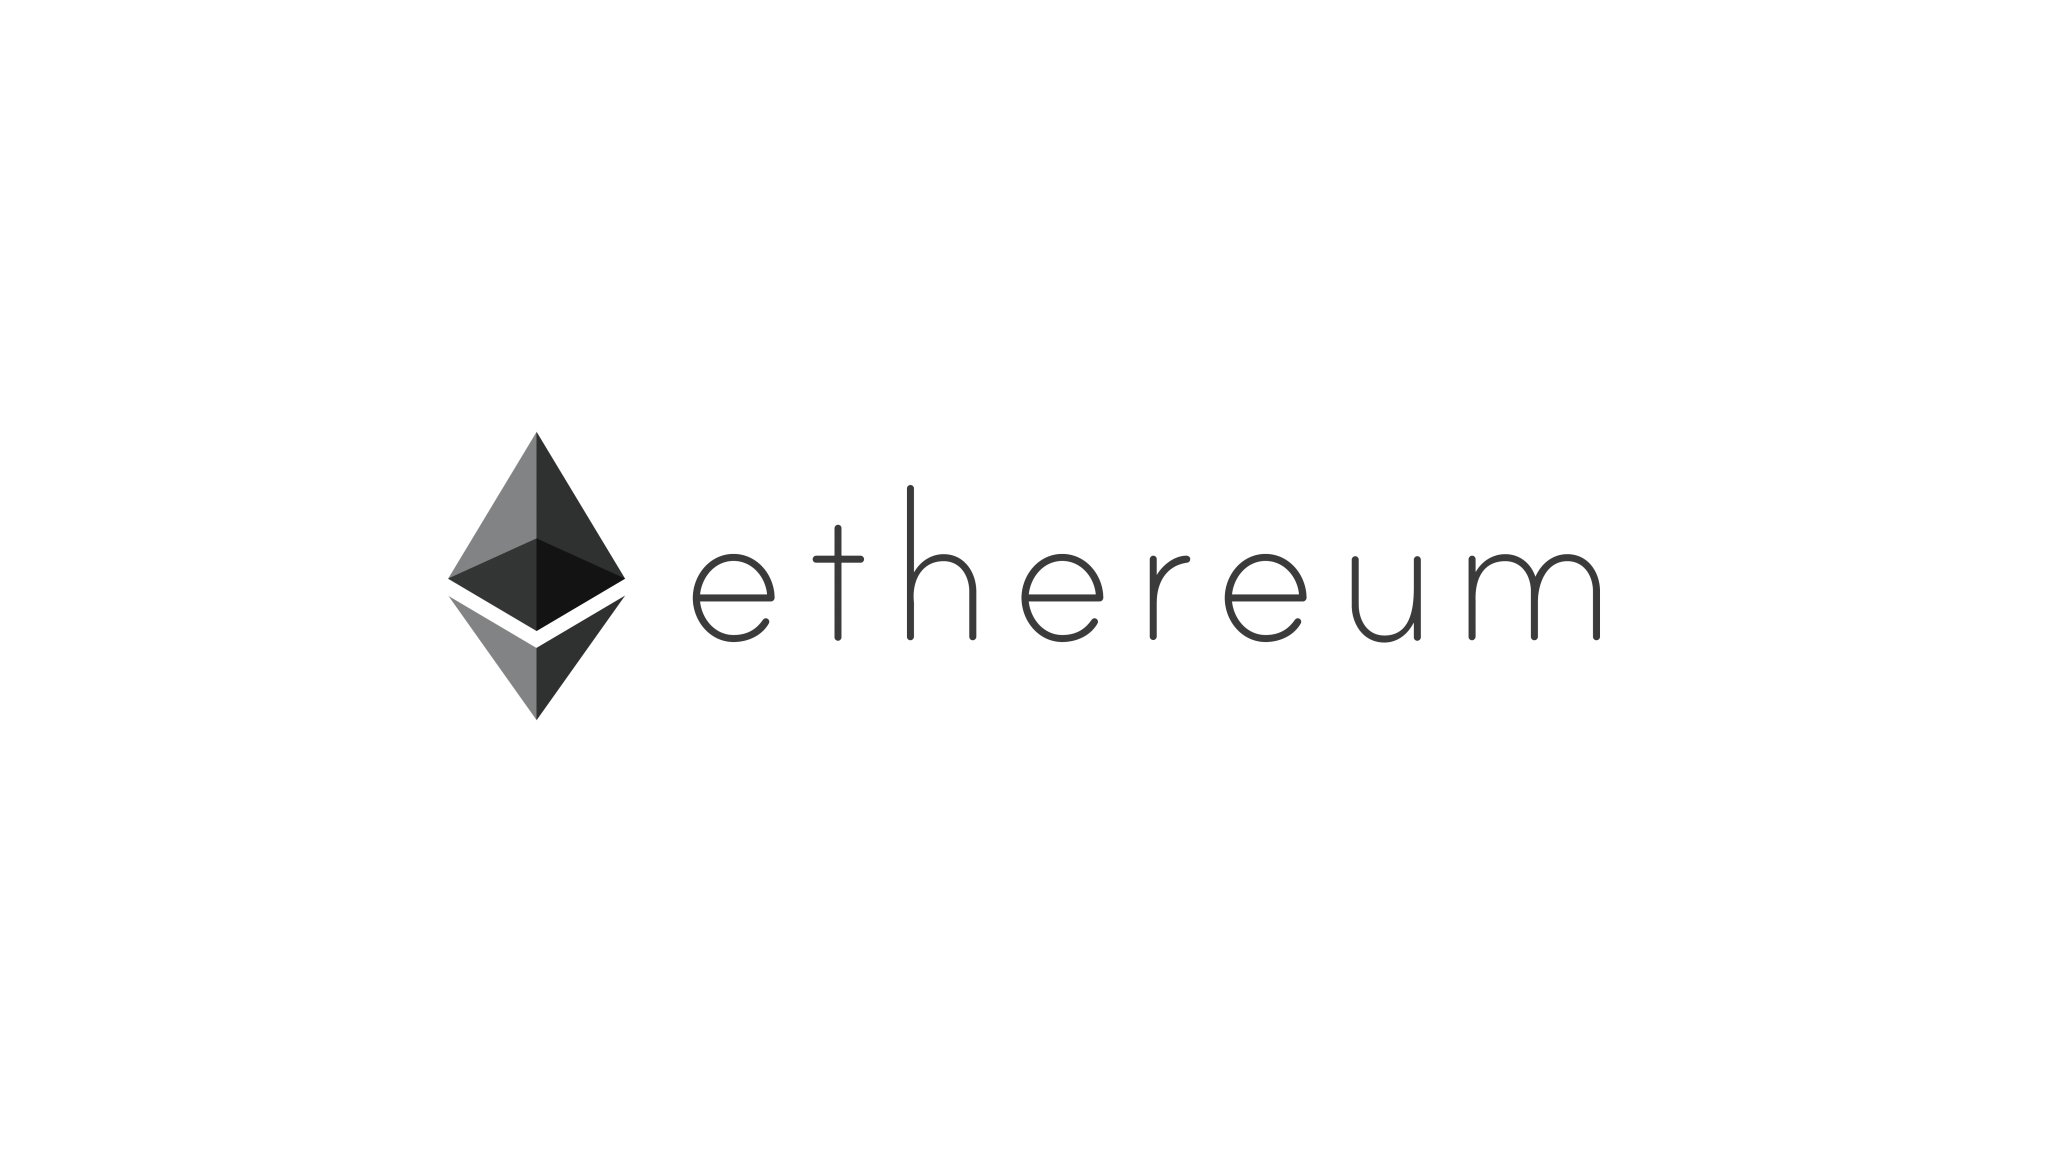 The Top 3 Ethereum Stocks According To @YahooFinance